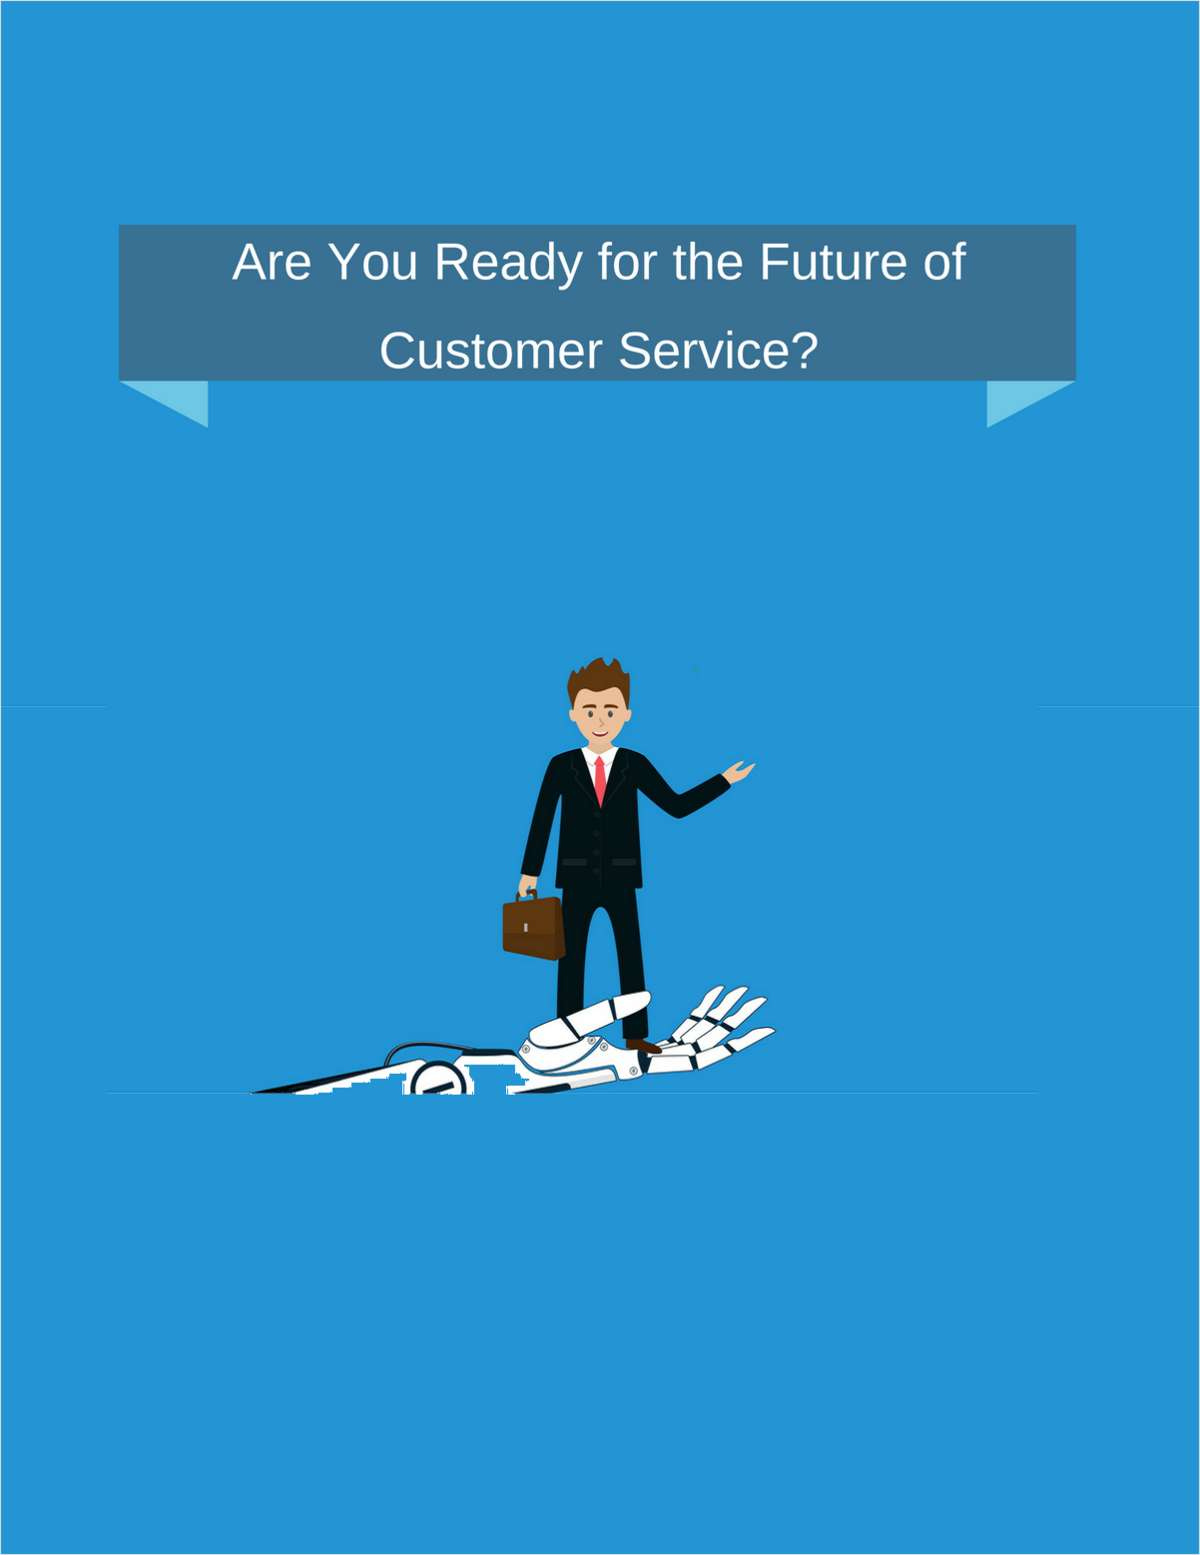 Are You Ready for the Future of Customer Service?